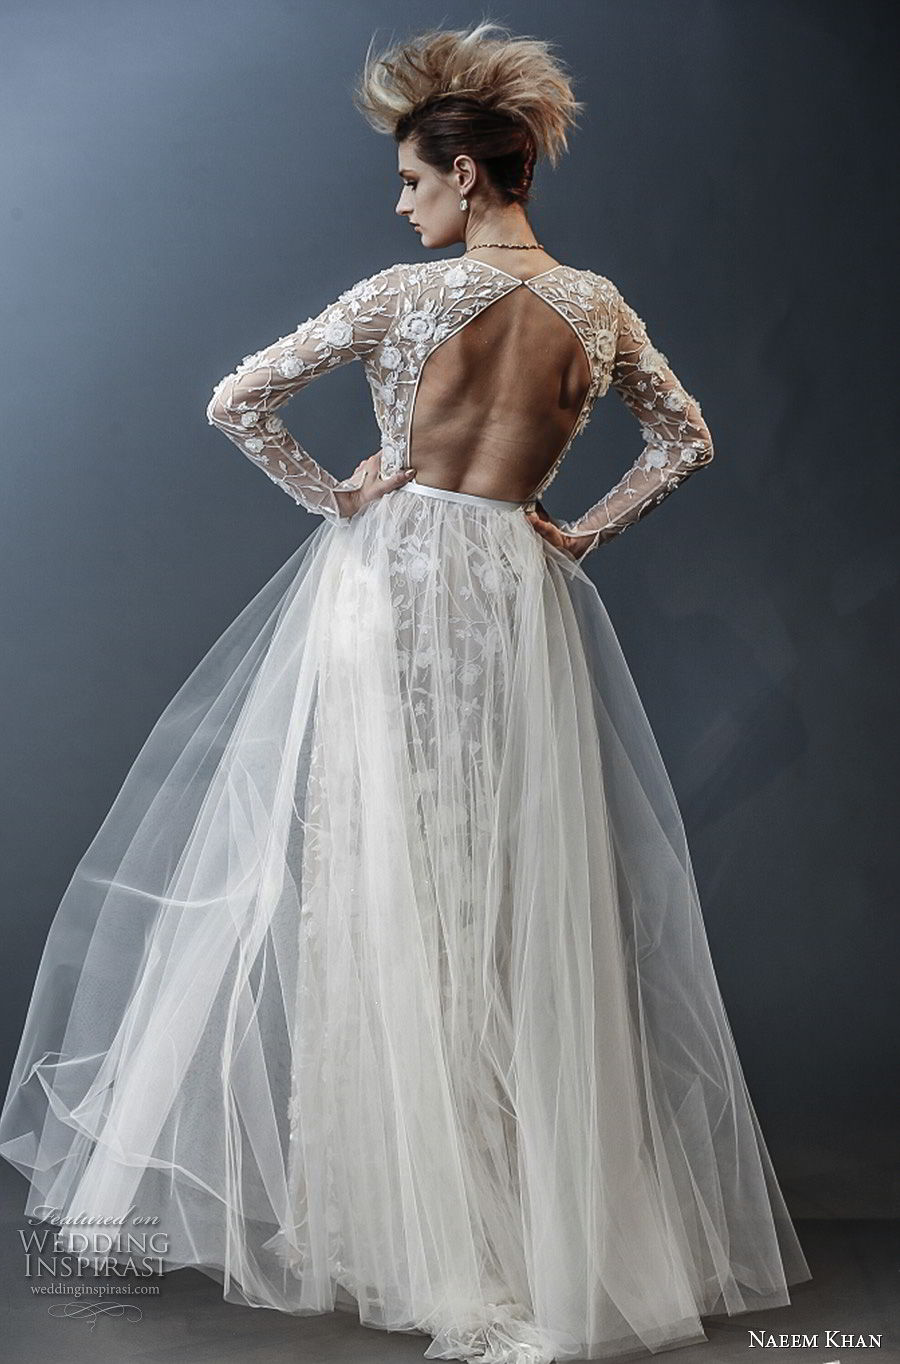 naeem khan spring 2019 bridal long sleeves deep v neck full embellishment sexy romantic sheath wedding dress a line overskirt keyhole back sweep train (3) bv